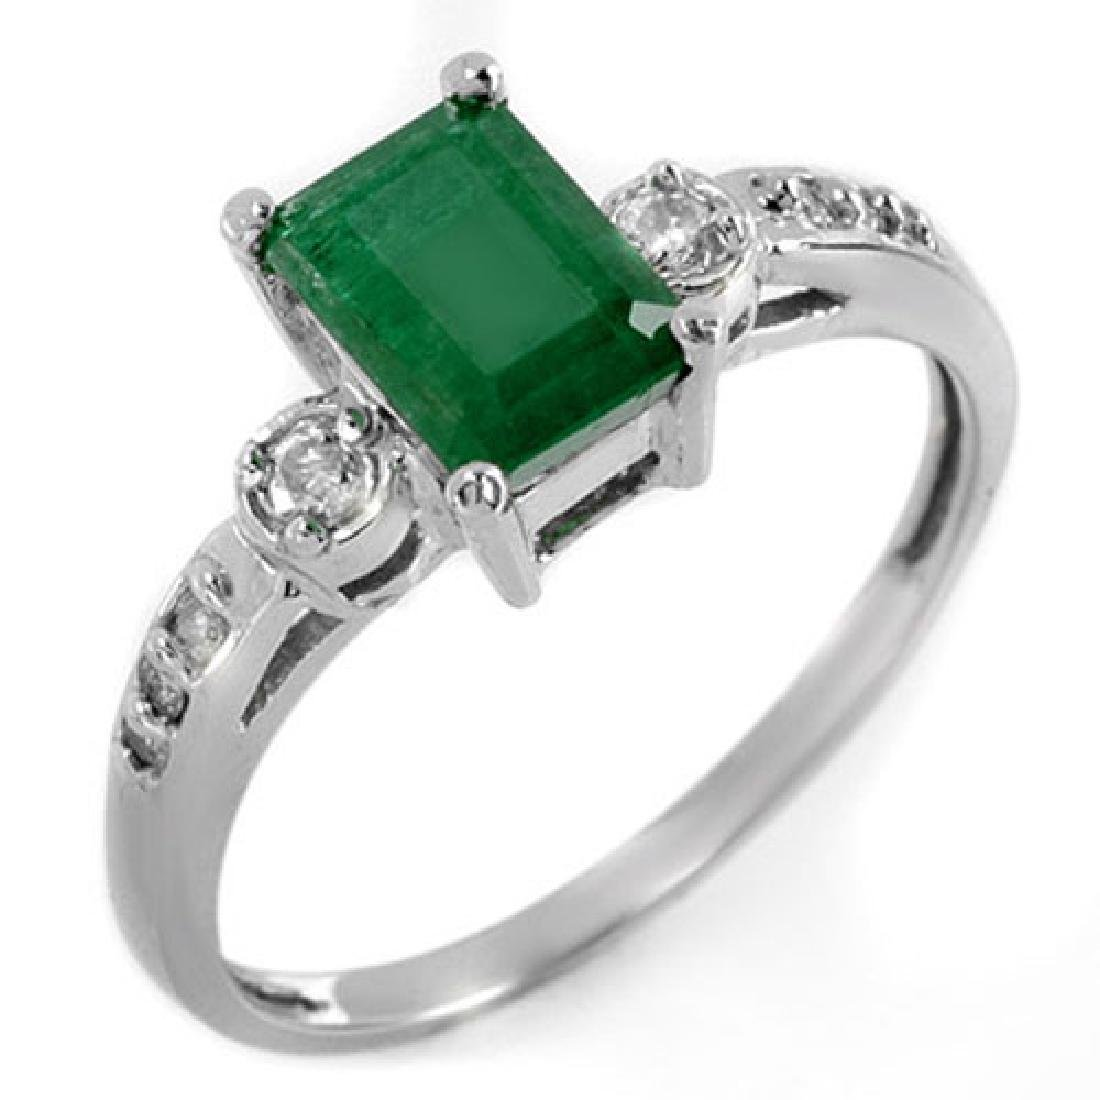 1.45 CTW Emerald & Diamond Ring 10K White Gold